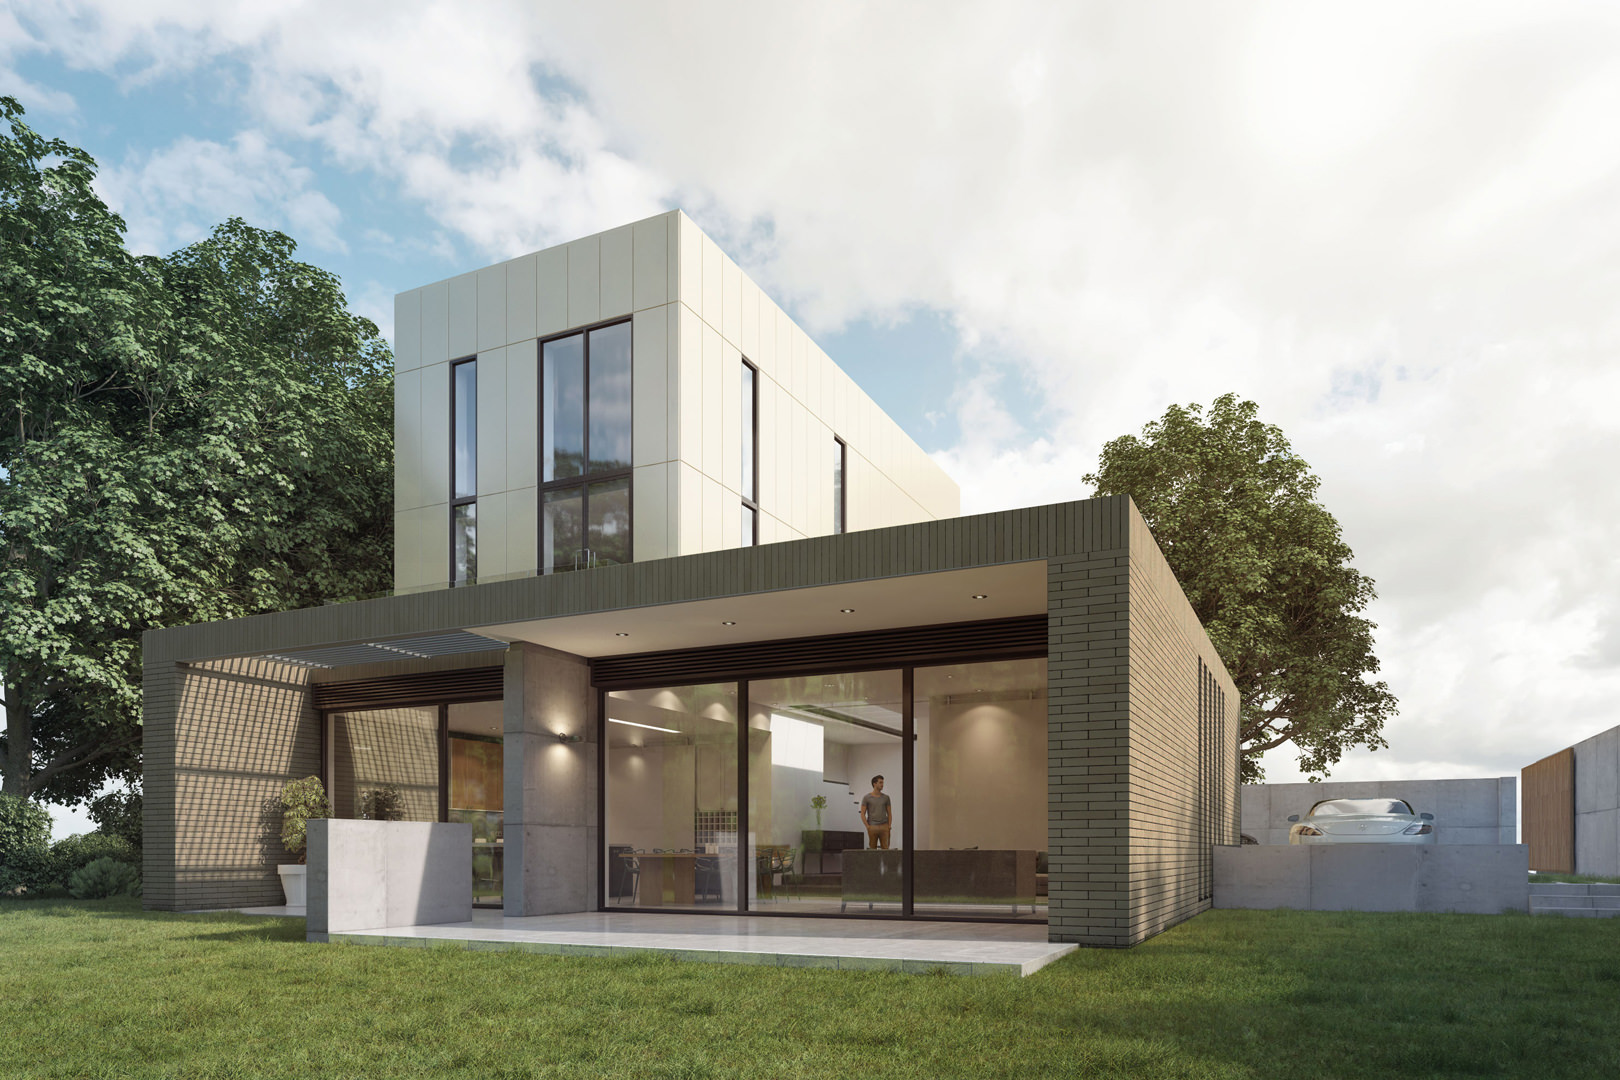 Striking new build 4 bedroom houses with a modern clean line look and open light and air spaces (designed by M Doohan whilst at FCH Architects)